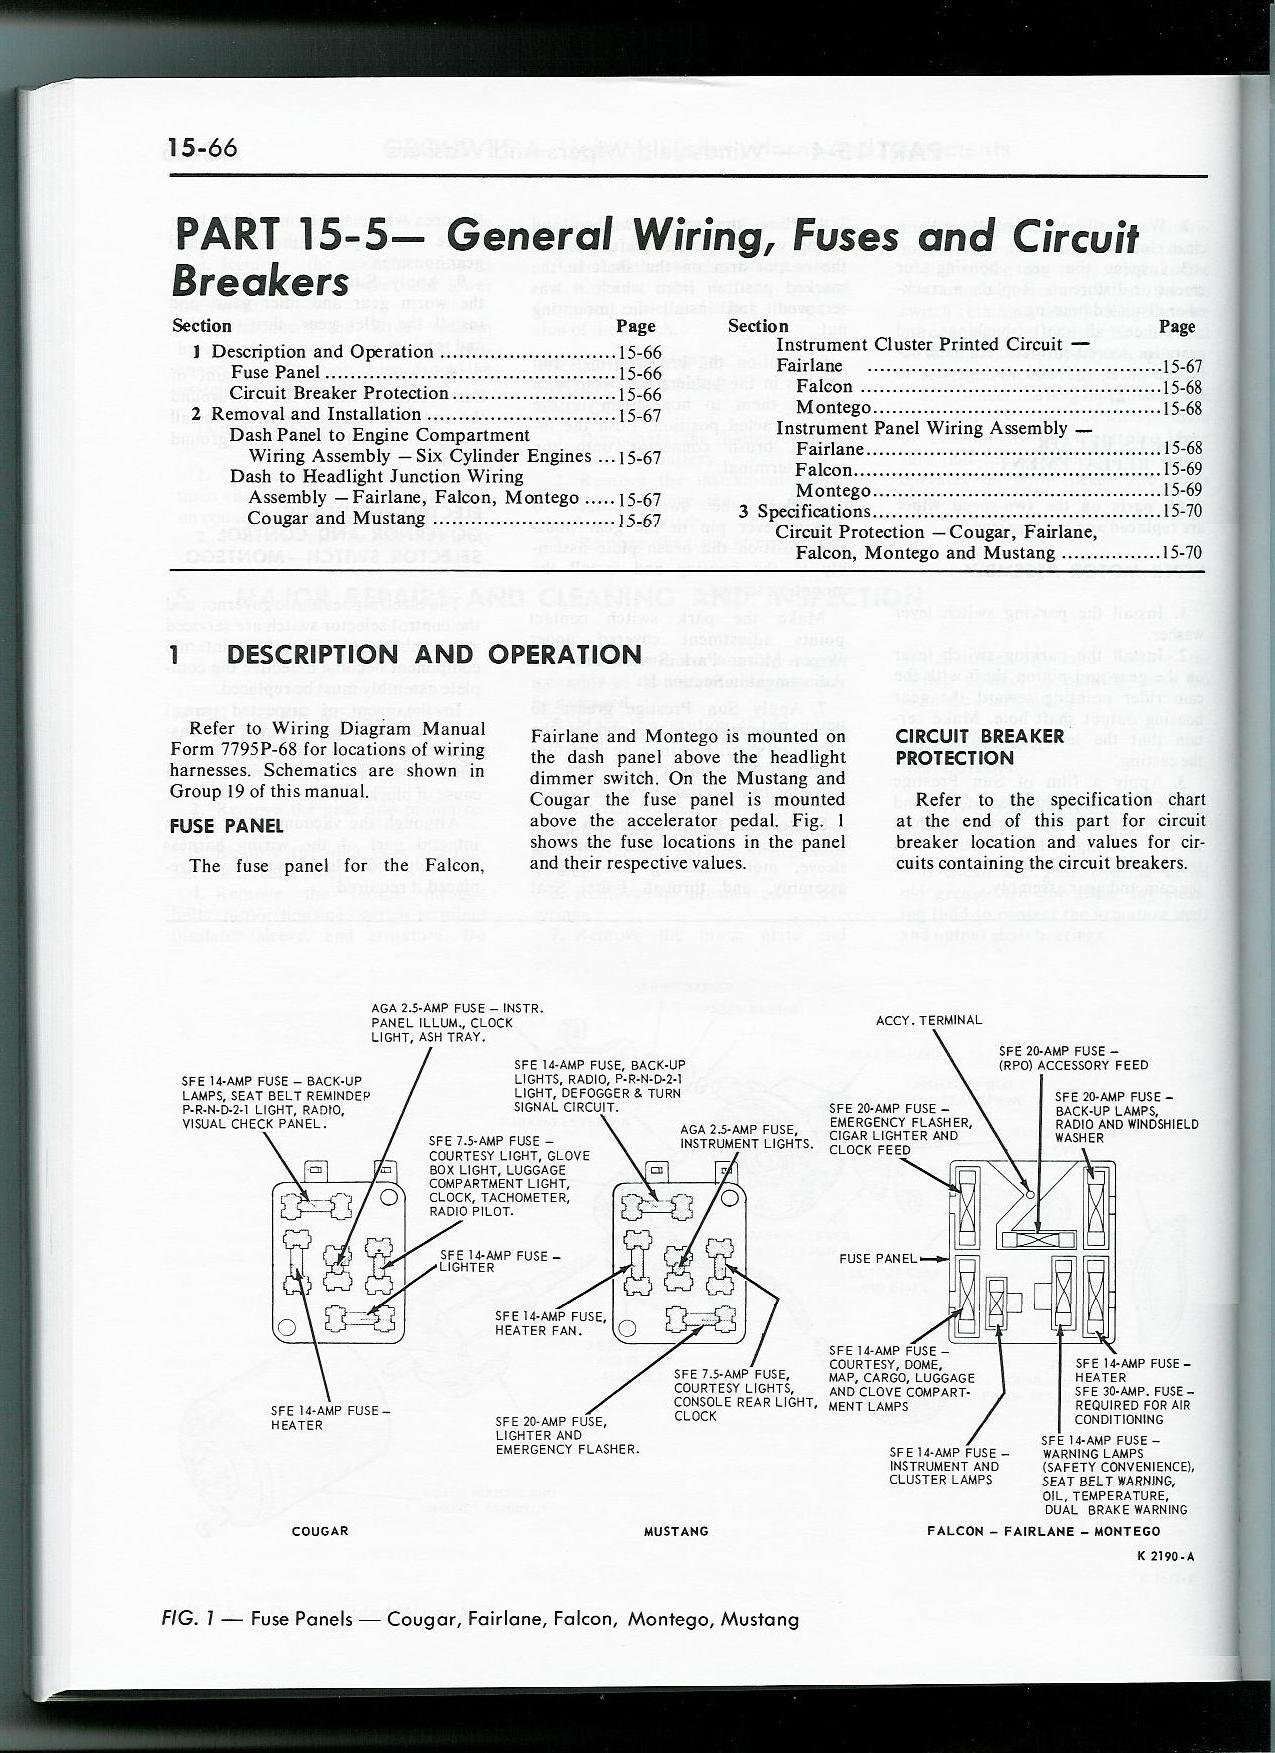 1966 mustang fuse panel diagram information schematics wiring diagrams 95 Civic Fuse Panel Diagram